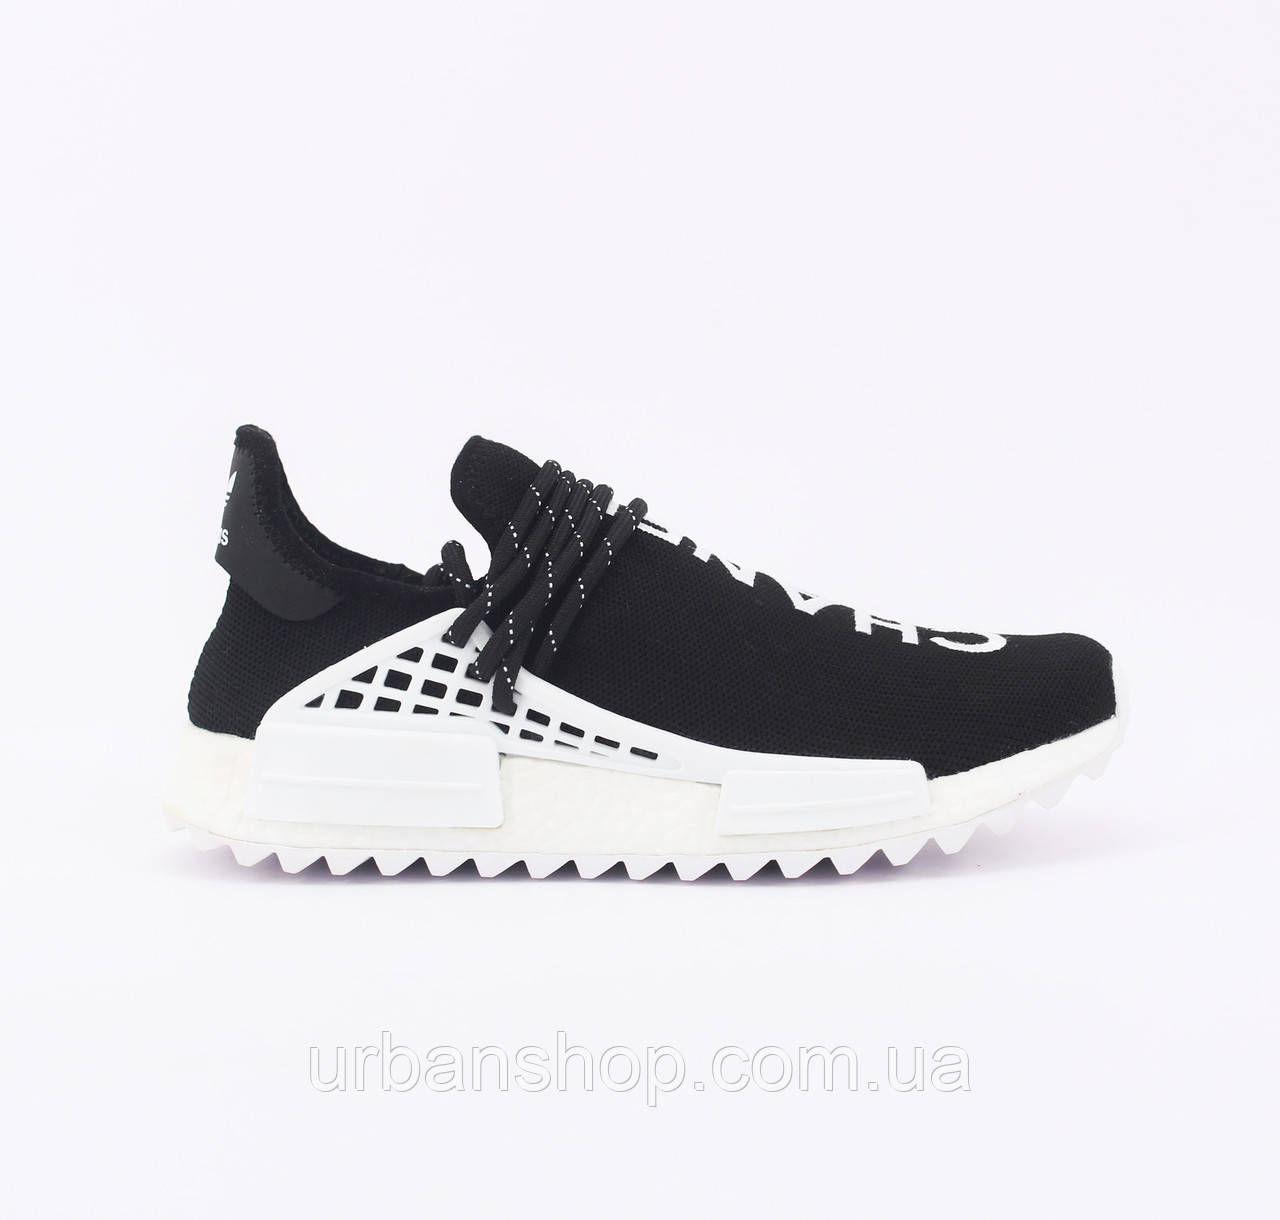 check out 79644 d10c6 Взуття Adidas Chanel x adidas Originals Pharrell Williams Hu NMD 44